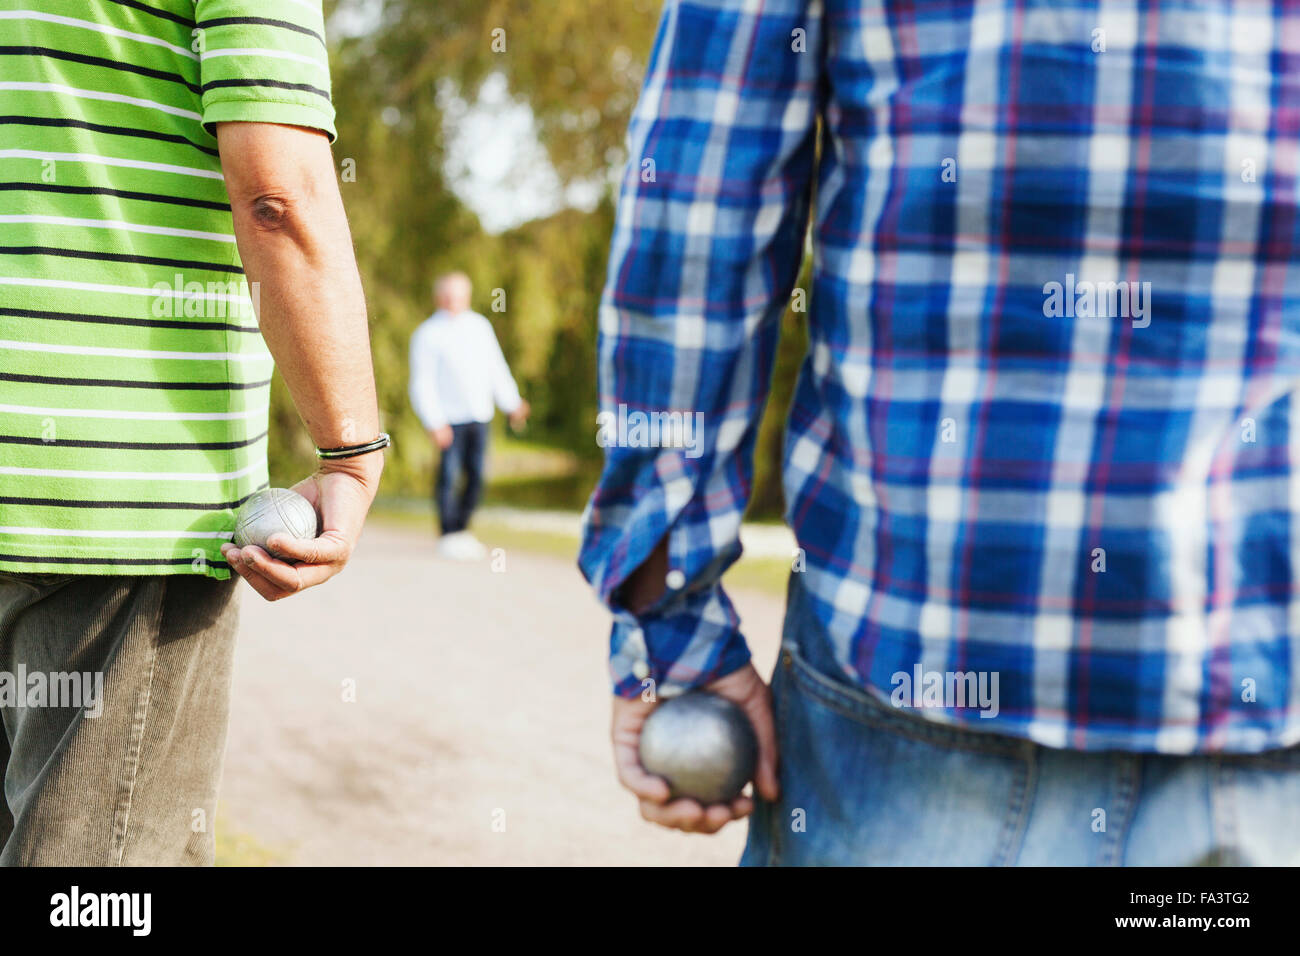 Rear view of men holding balls while playing boule on footpath at park - Stock Image